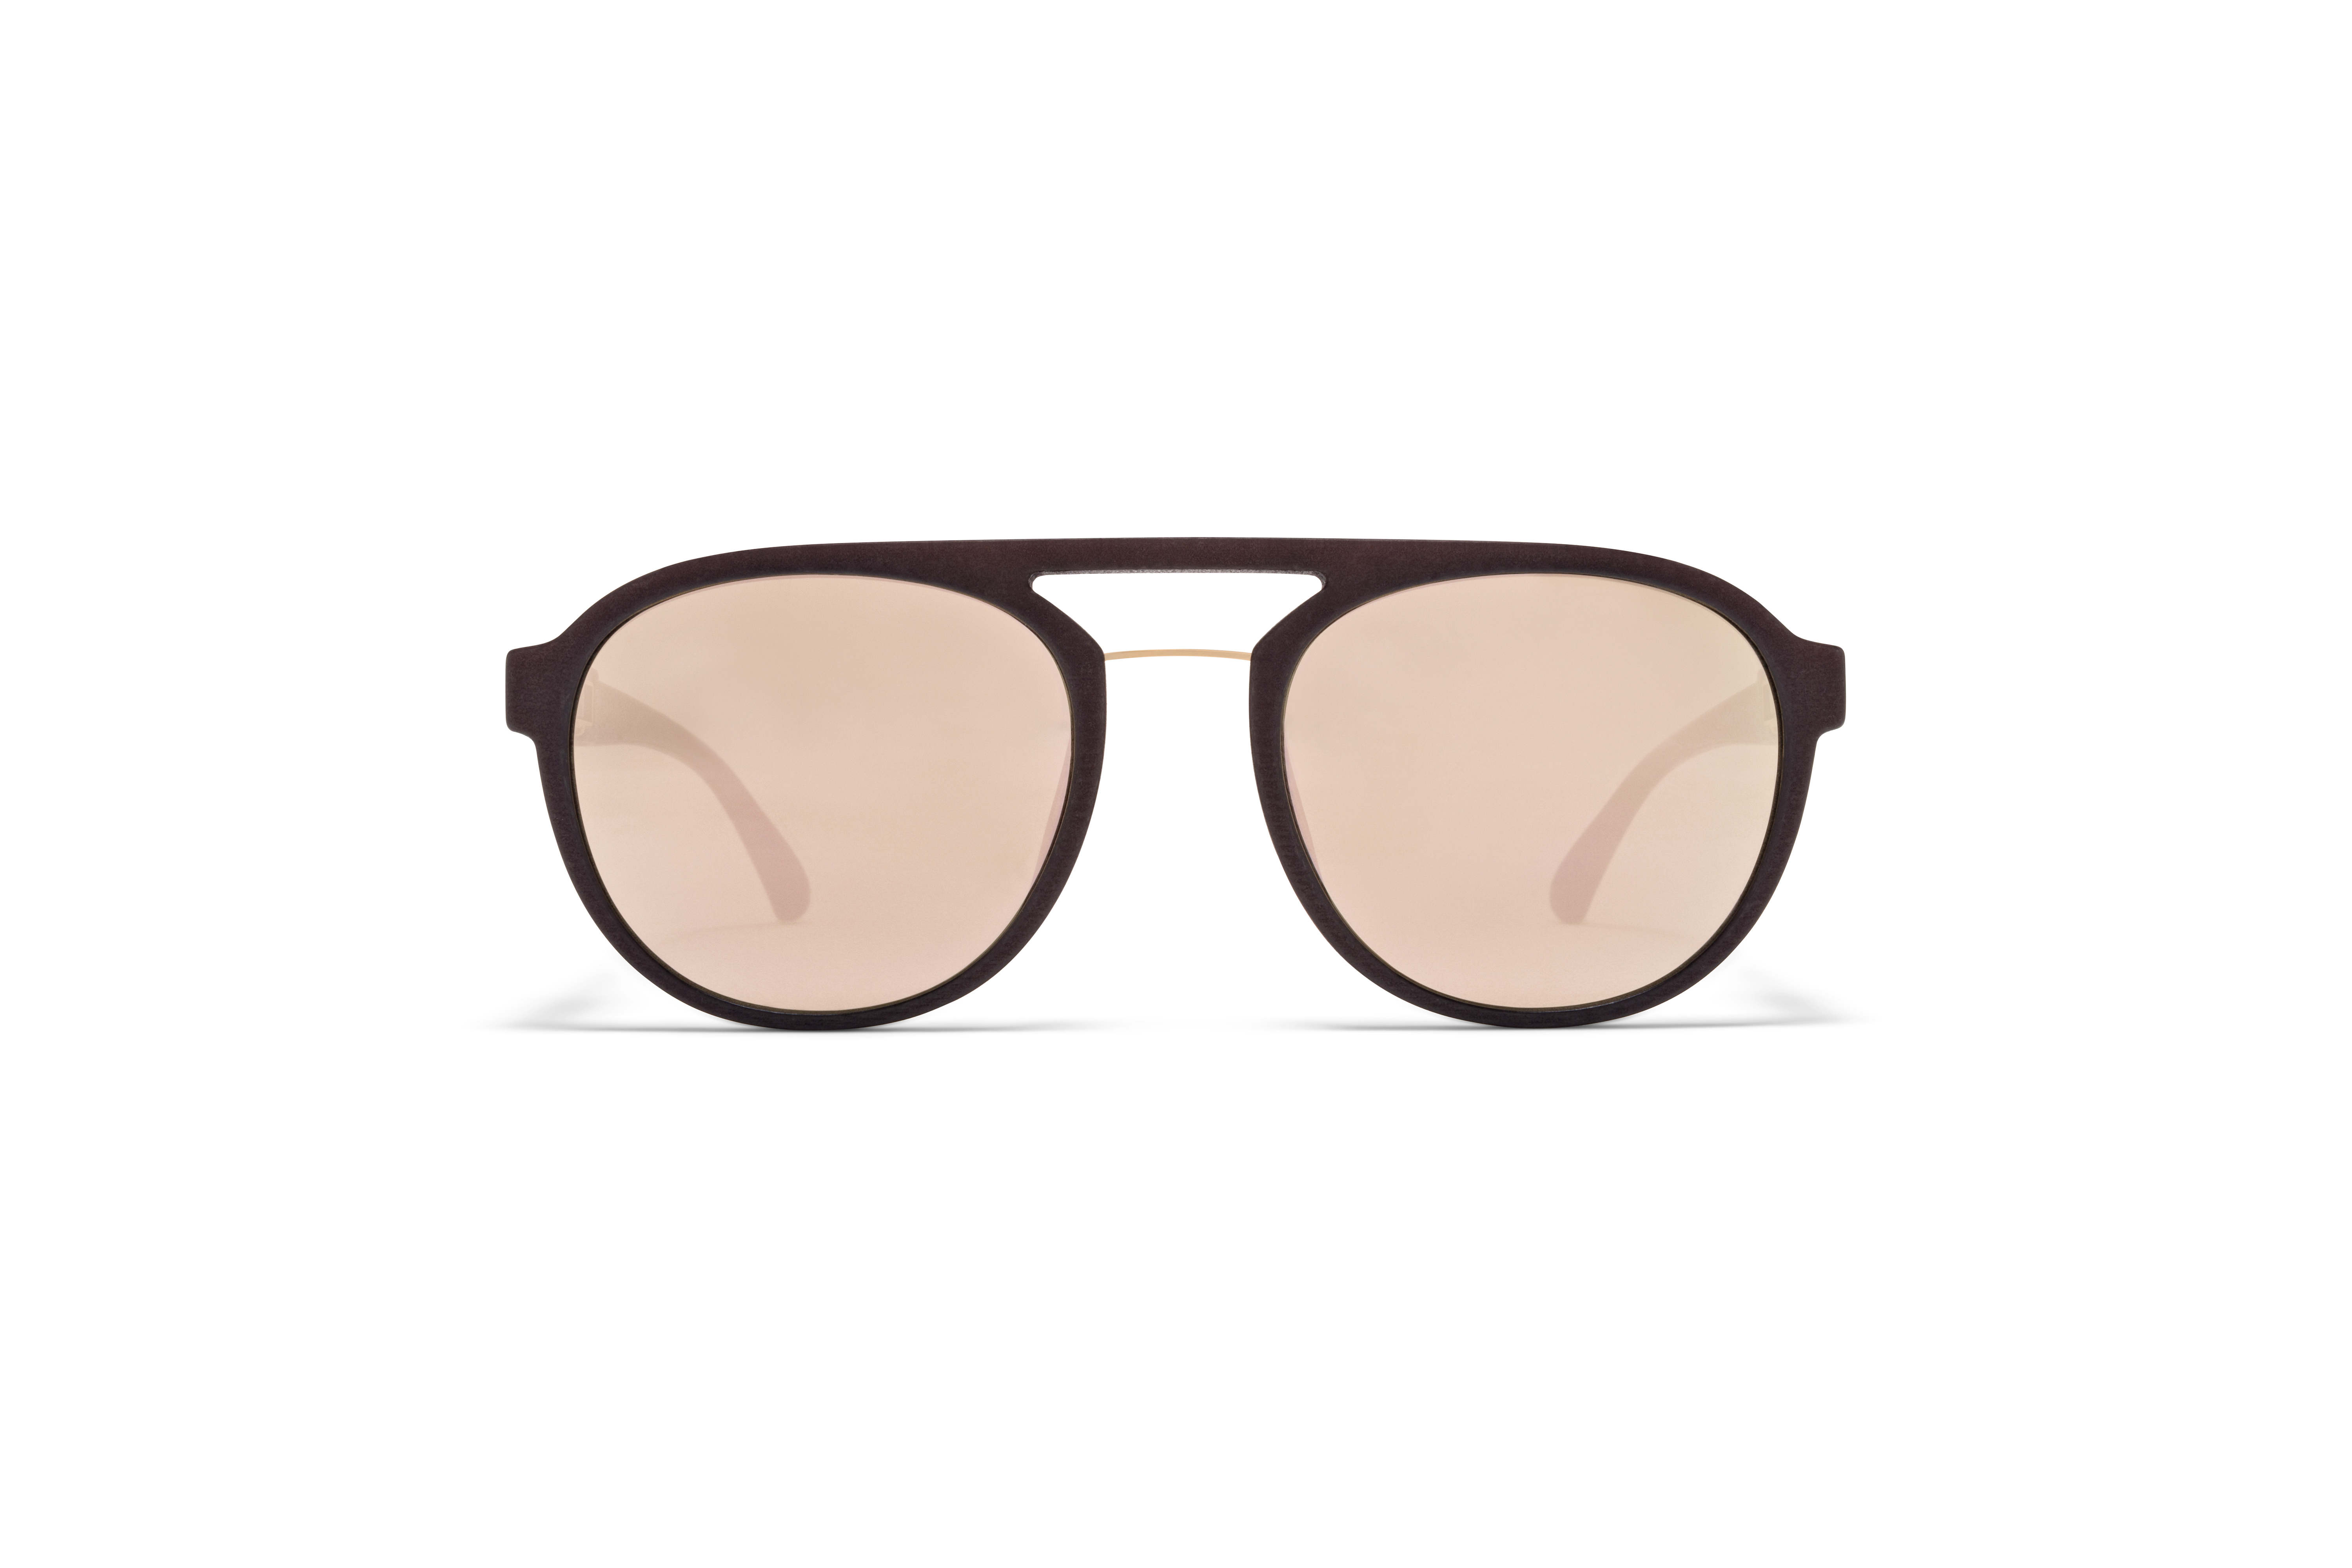 Mykita Mylon sunglasses Cheap Sale Low Price Fee Shipping Outlet Amazon wXKQxsUTW